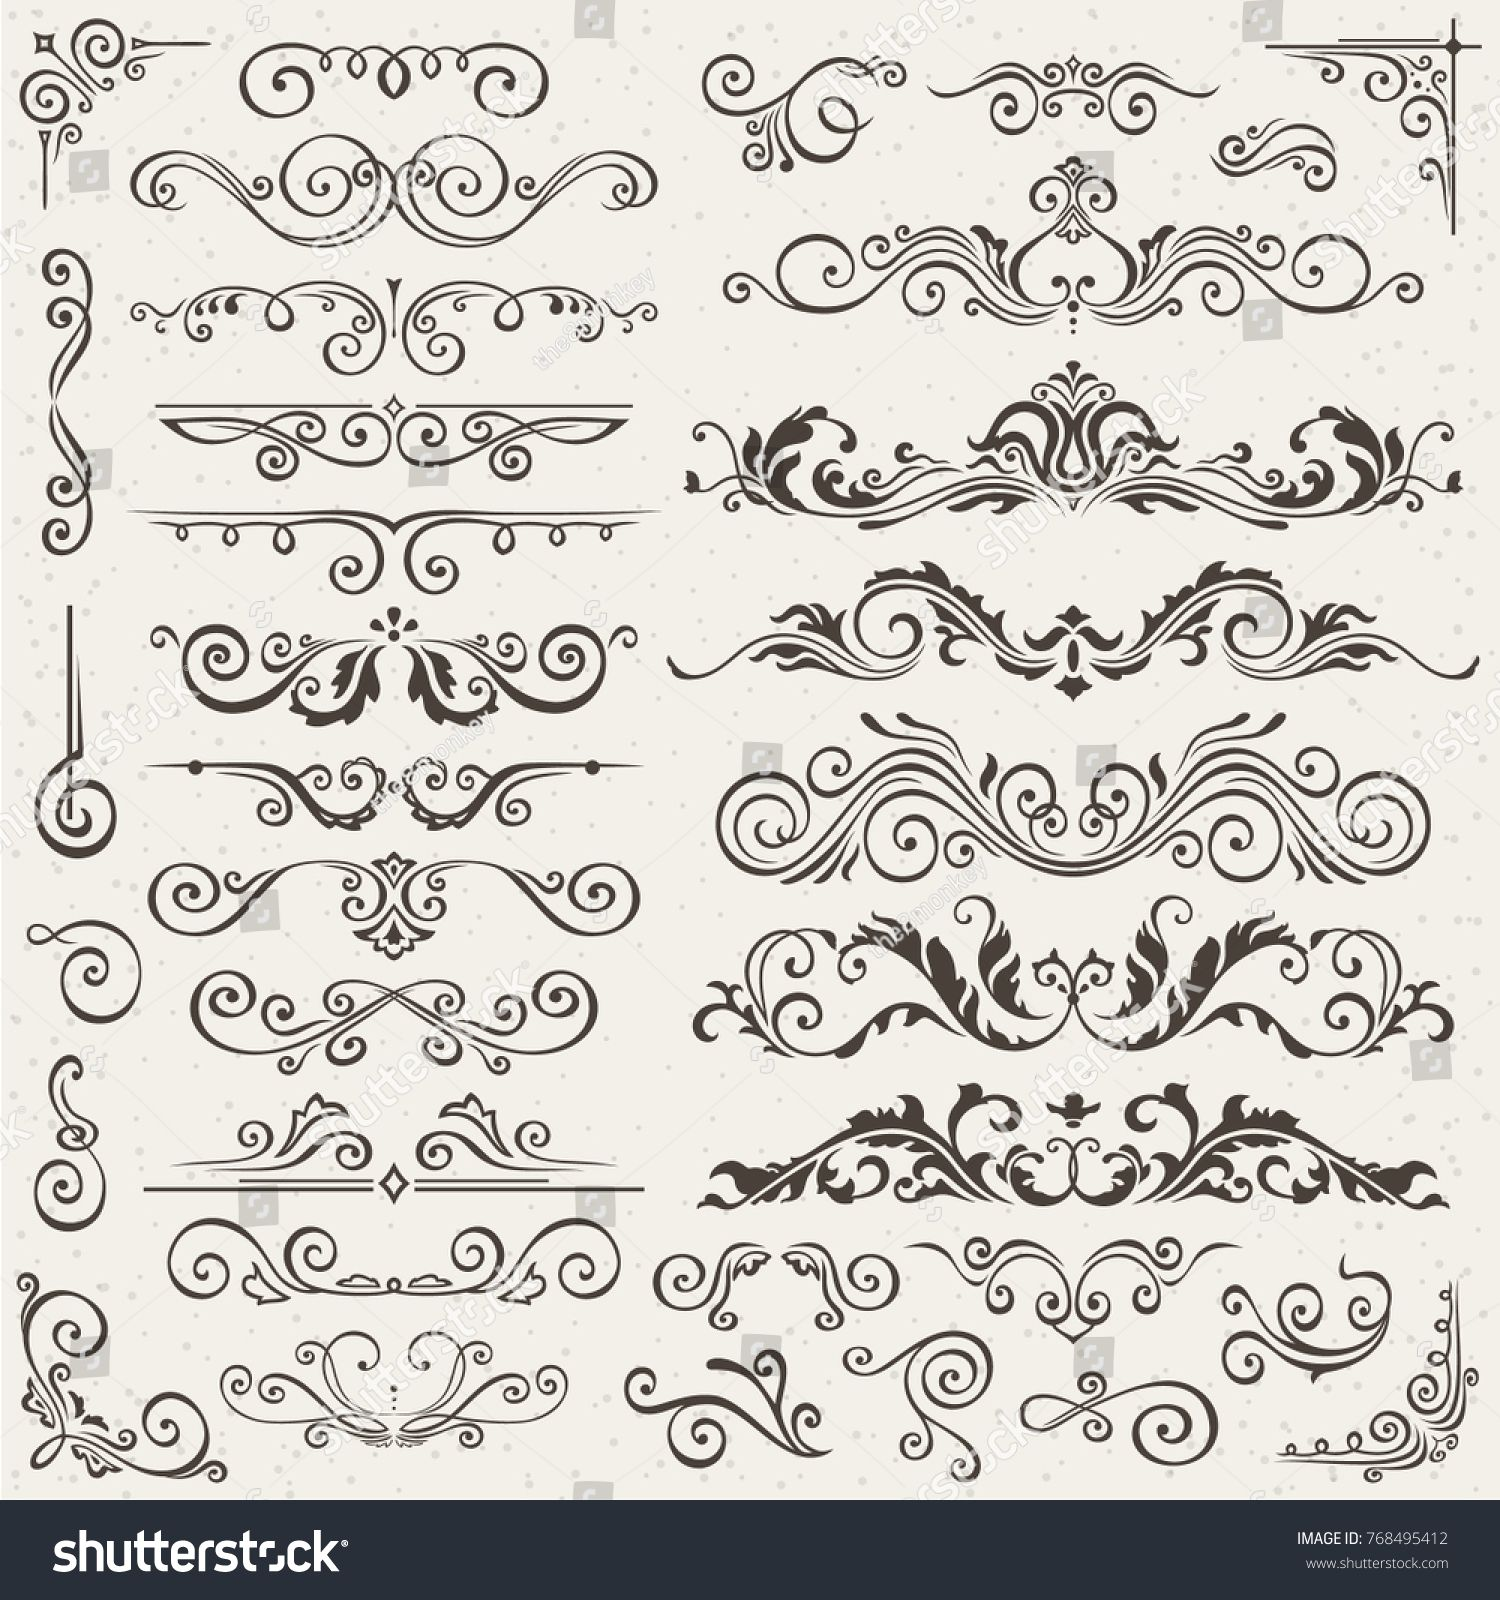 flourish border corner and frame elements collection card